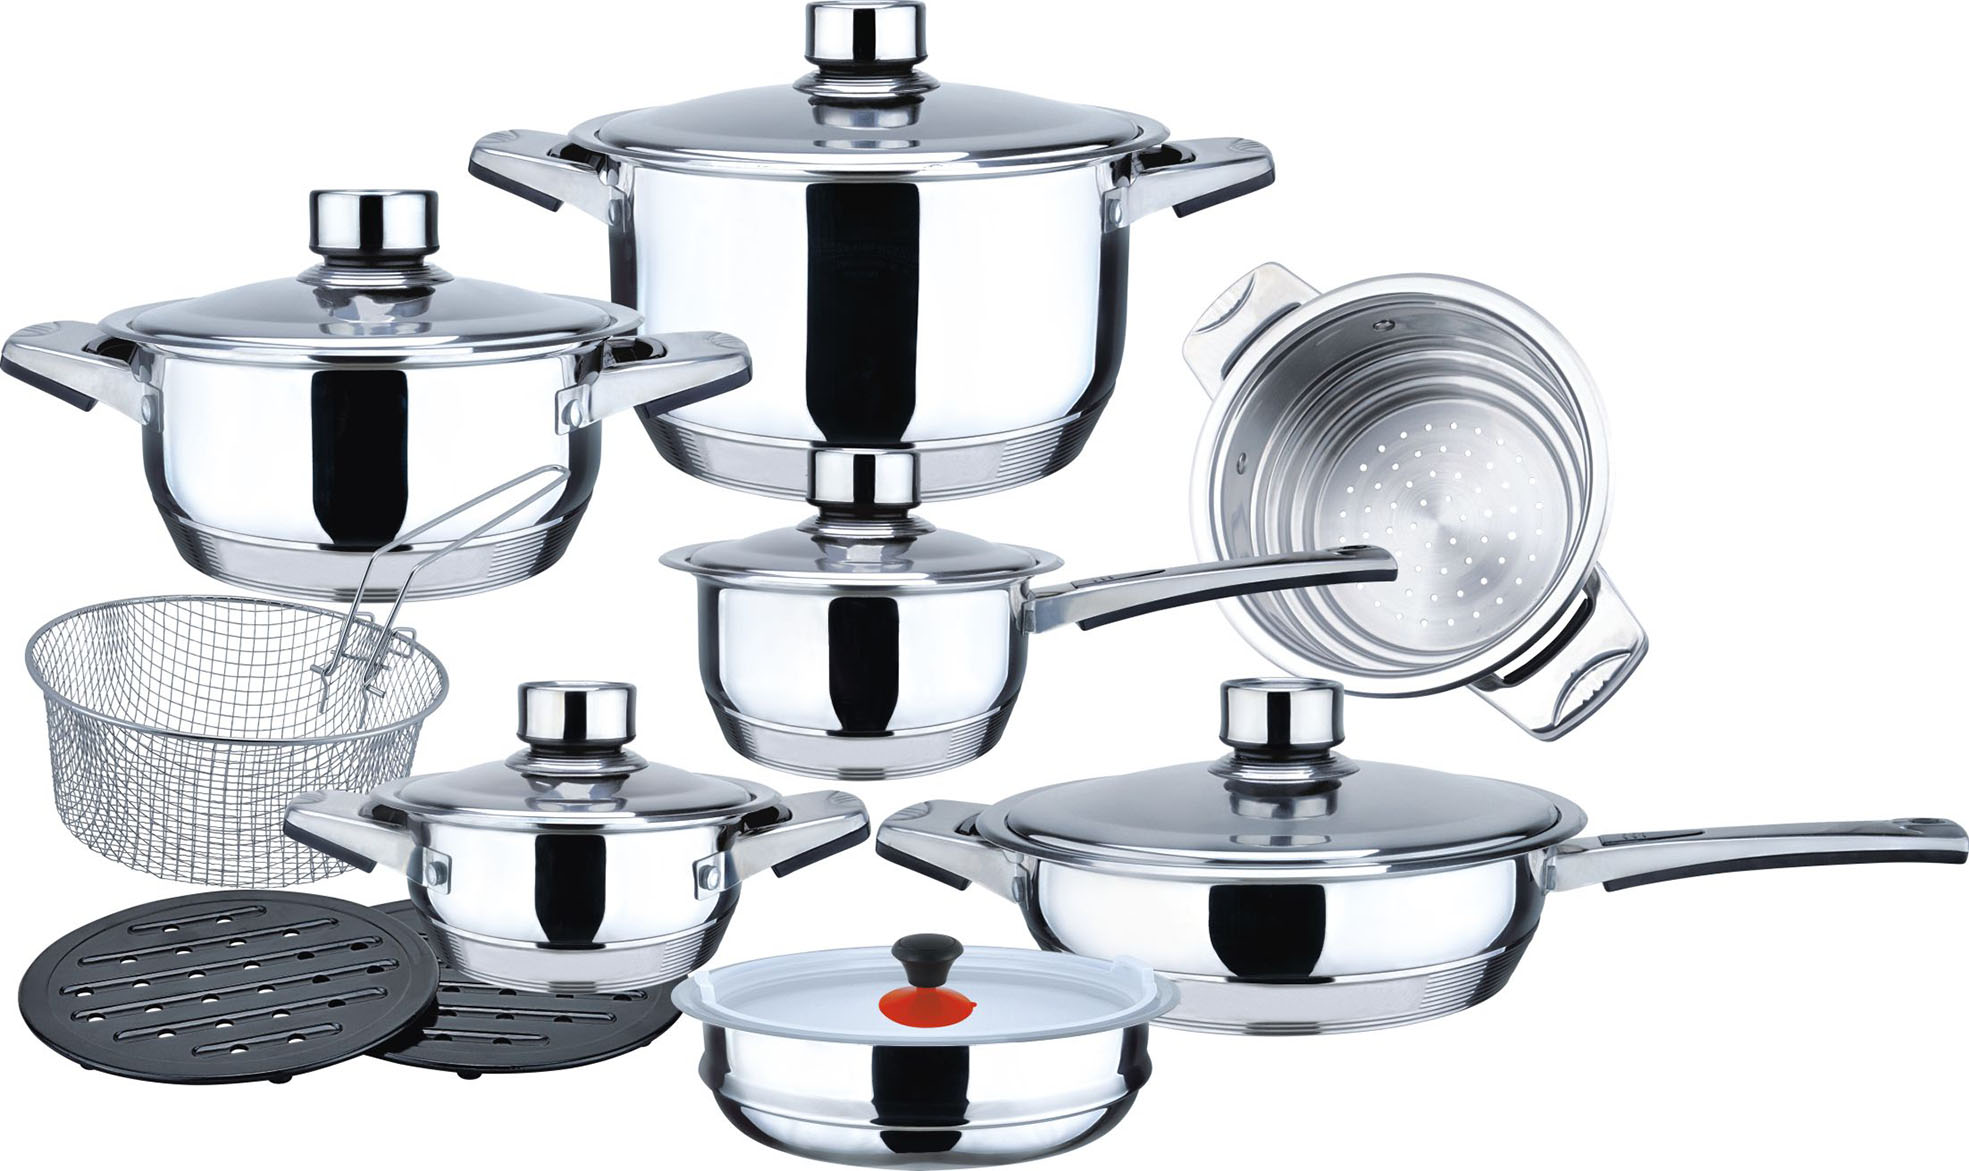 New 11step 18pcs wide edge cookware set